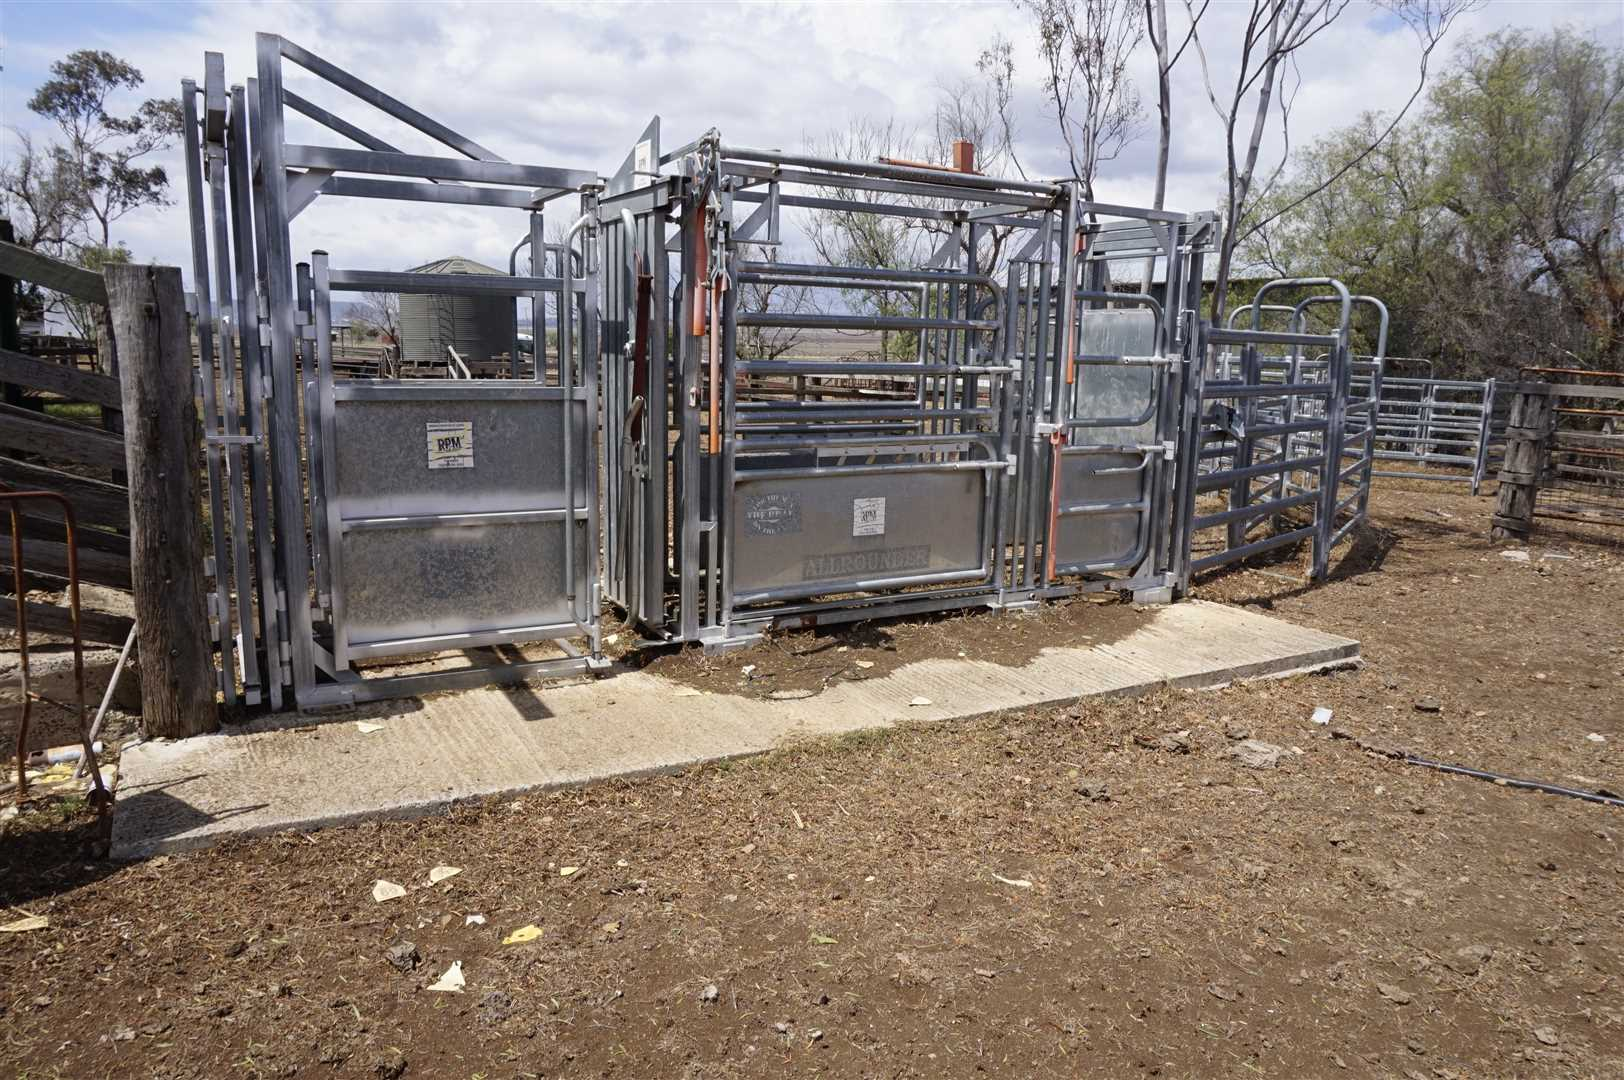 Crush, Ramp, Yards and Troughs